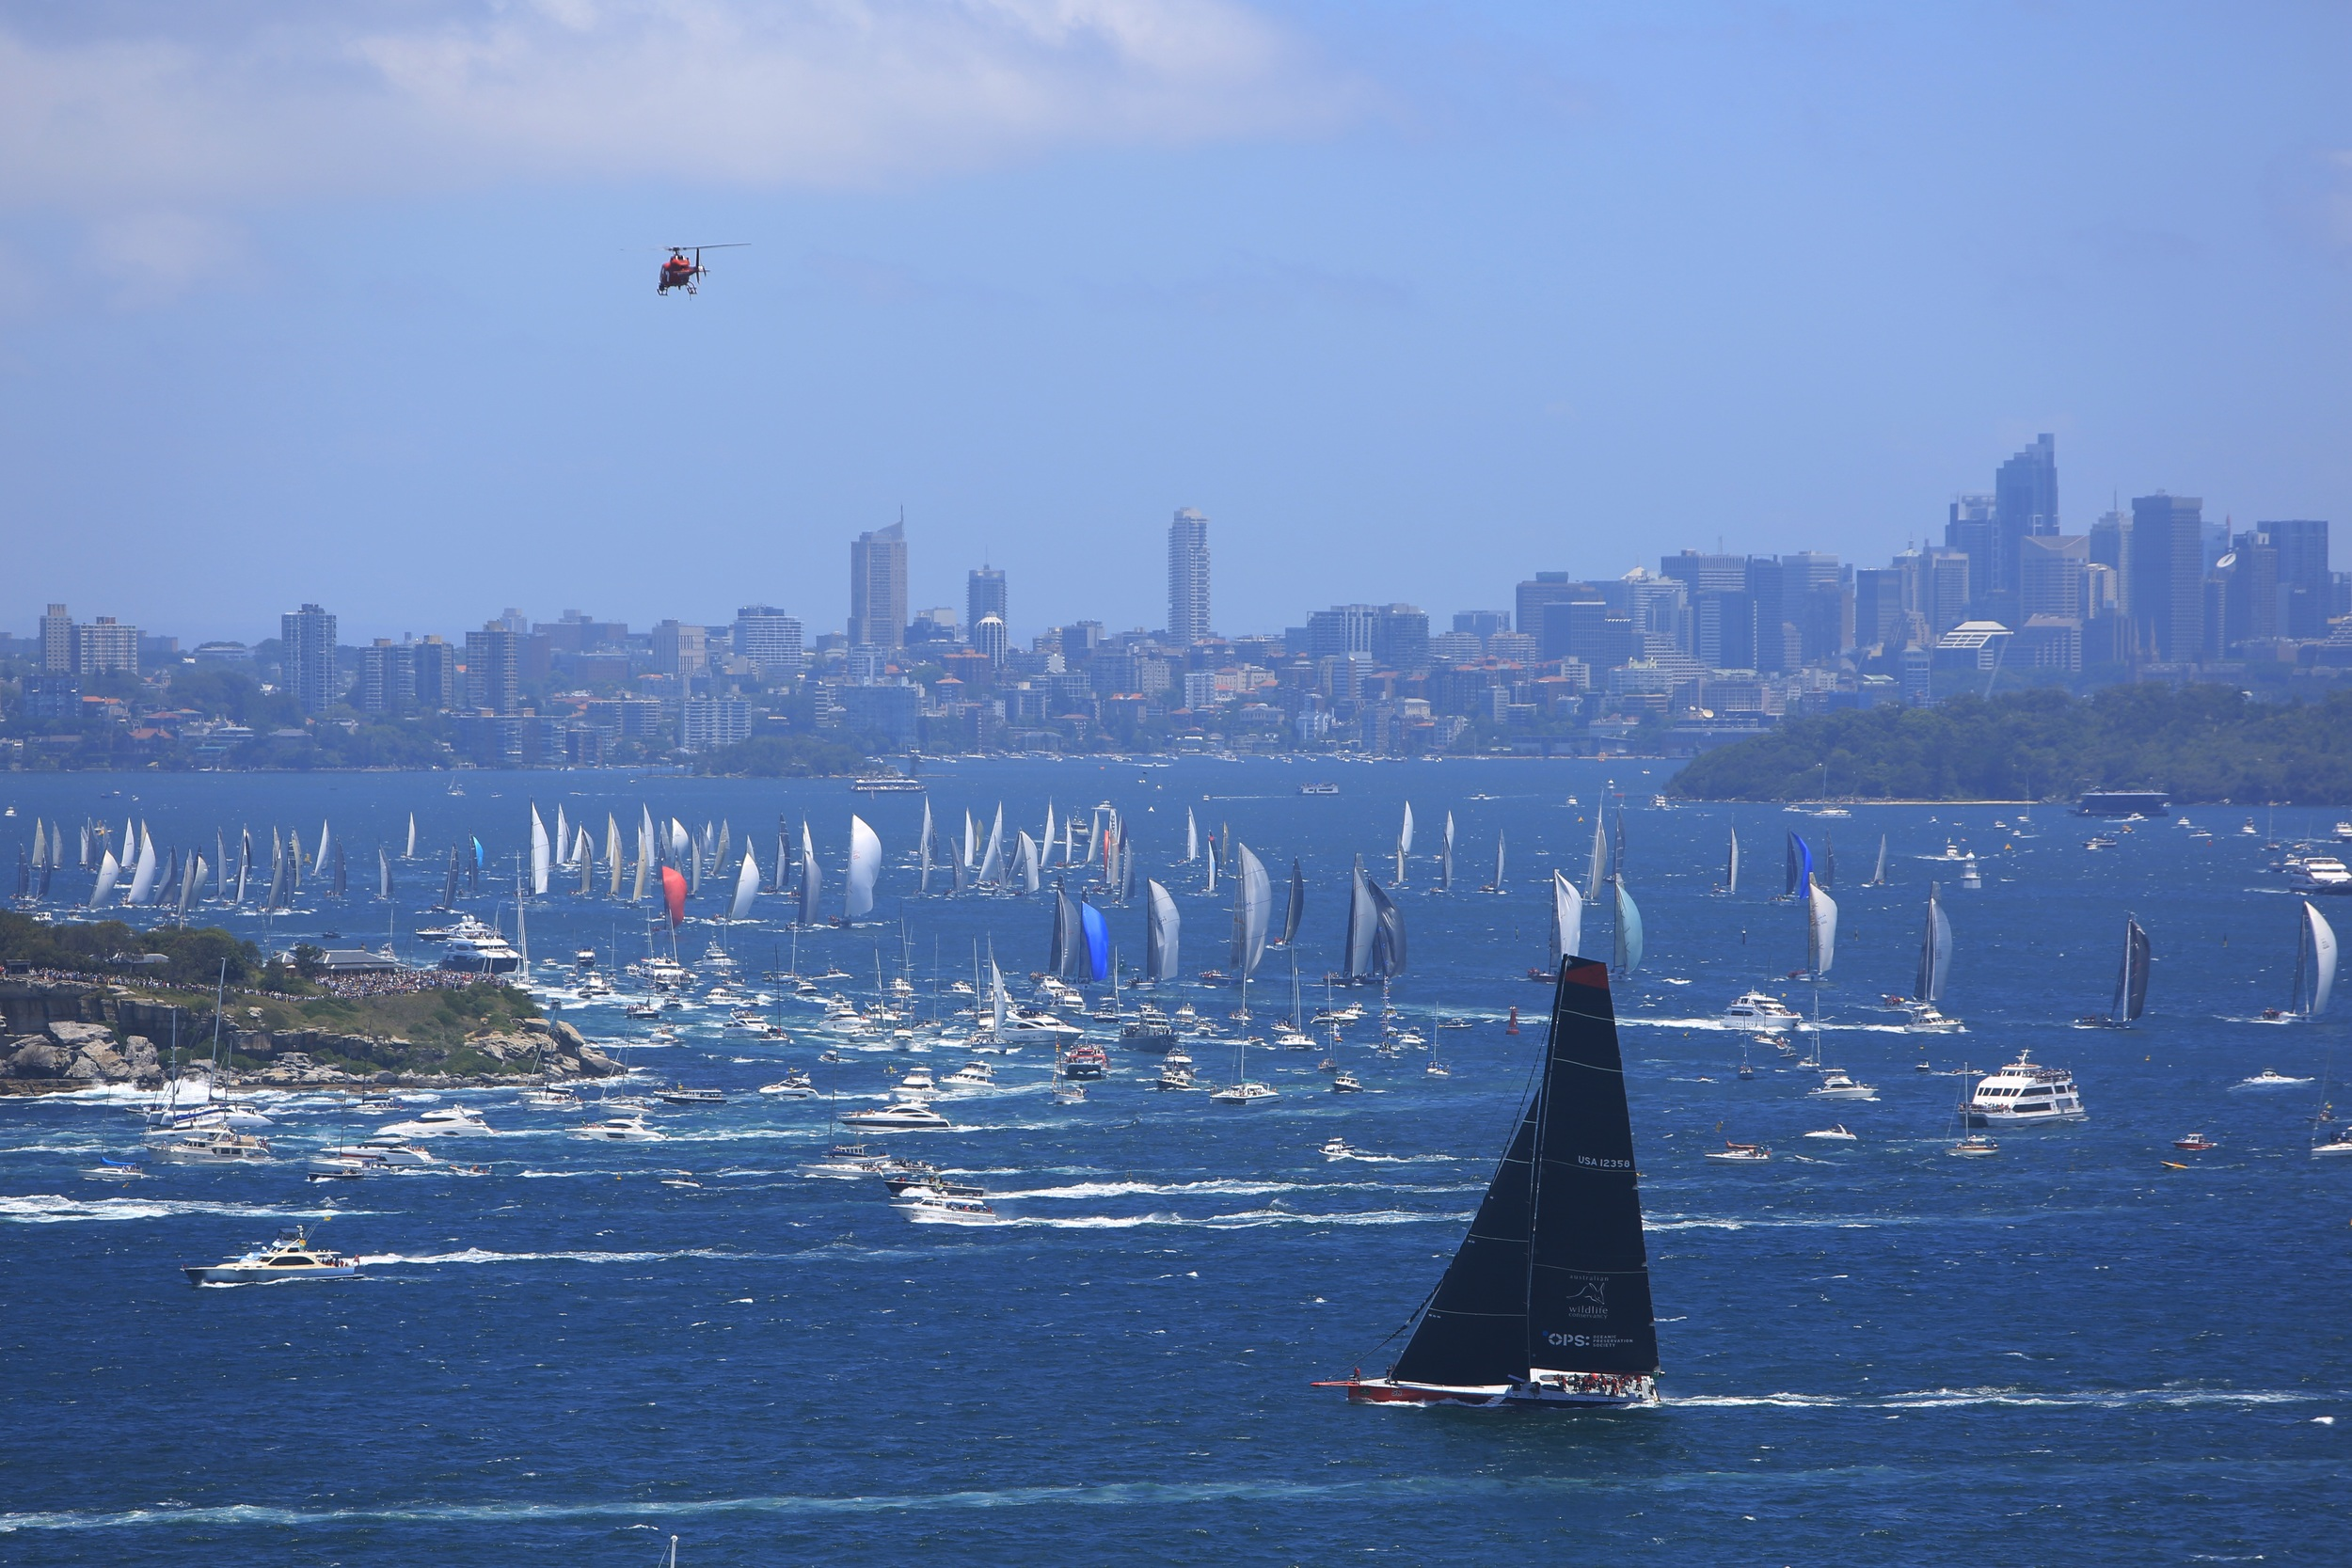 Sydney to Hobart 2014: 100 footer supermaxi Comanche. Photo by  Gino Nalini